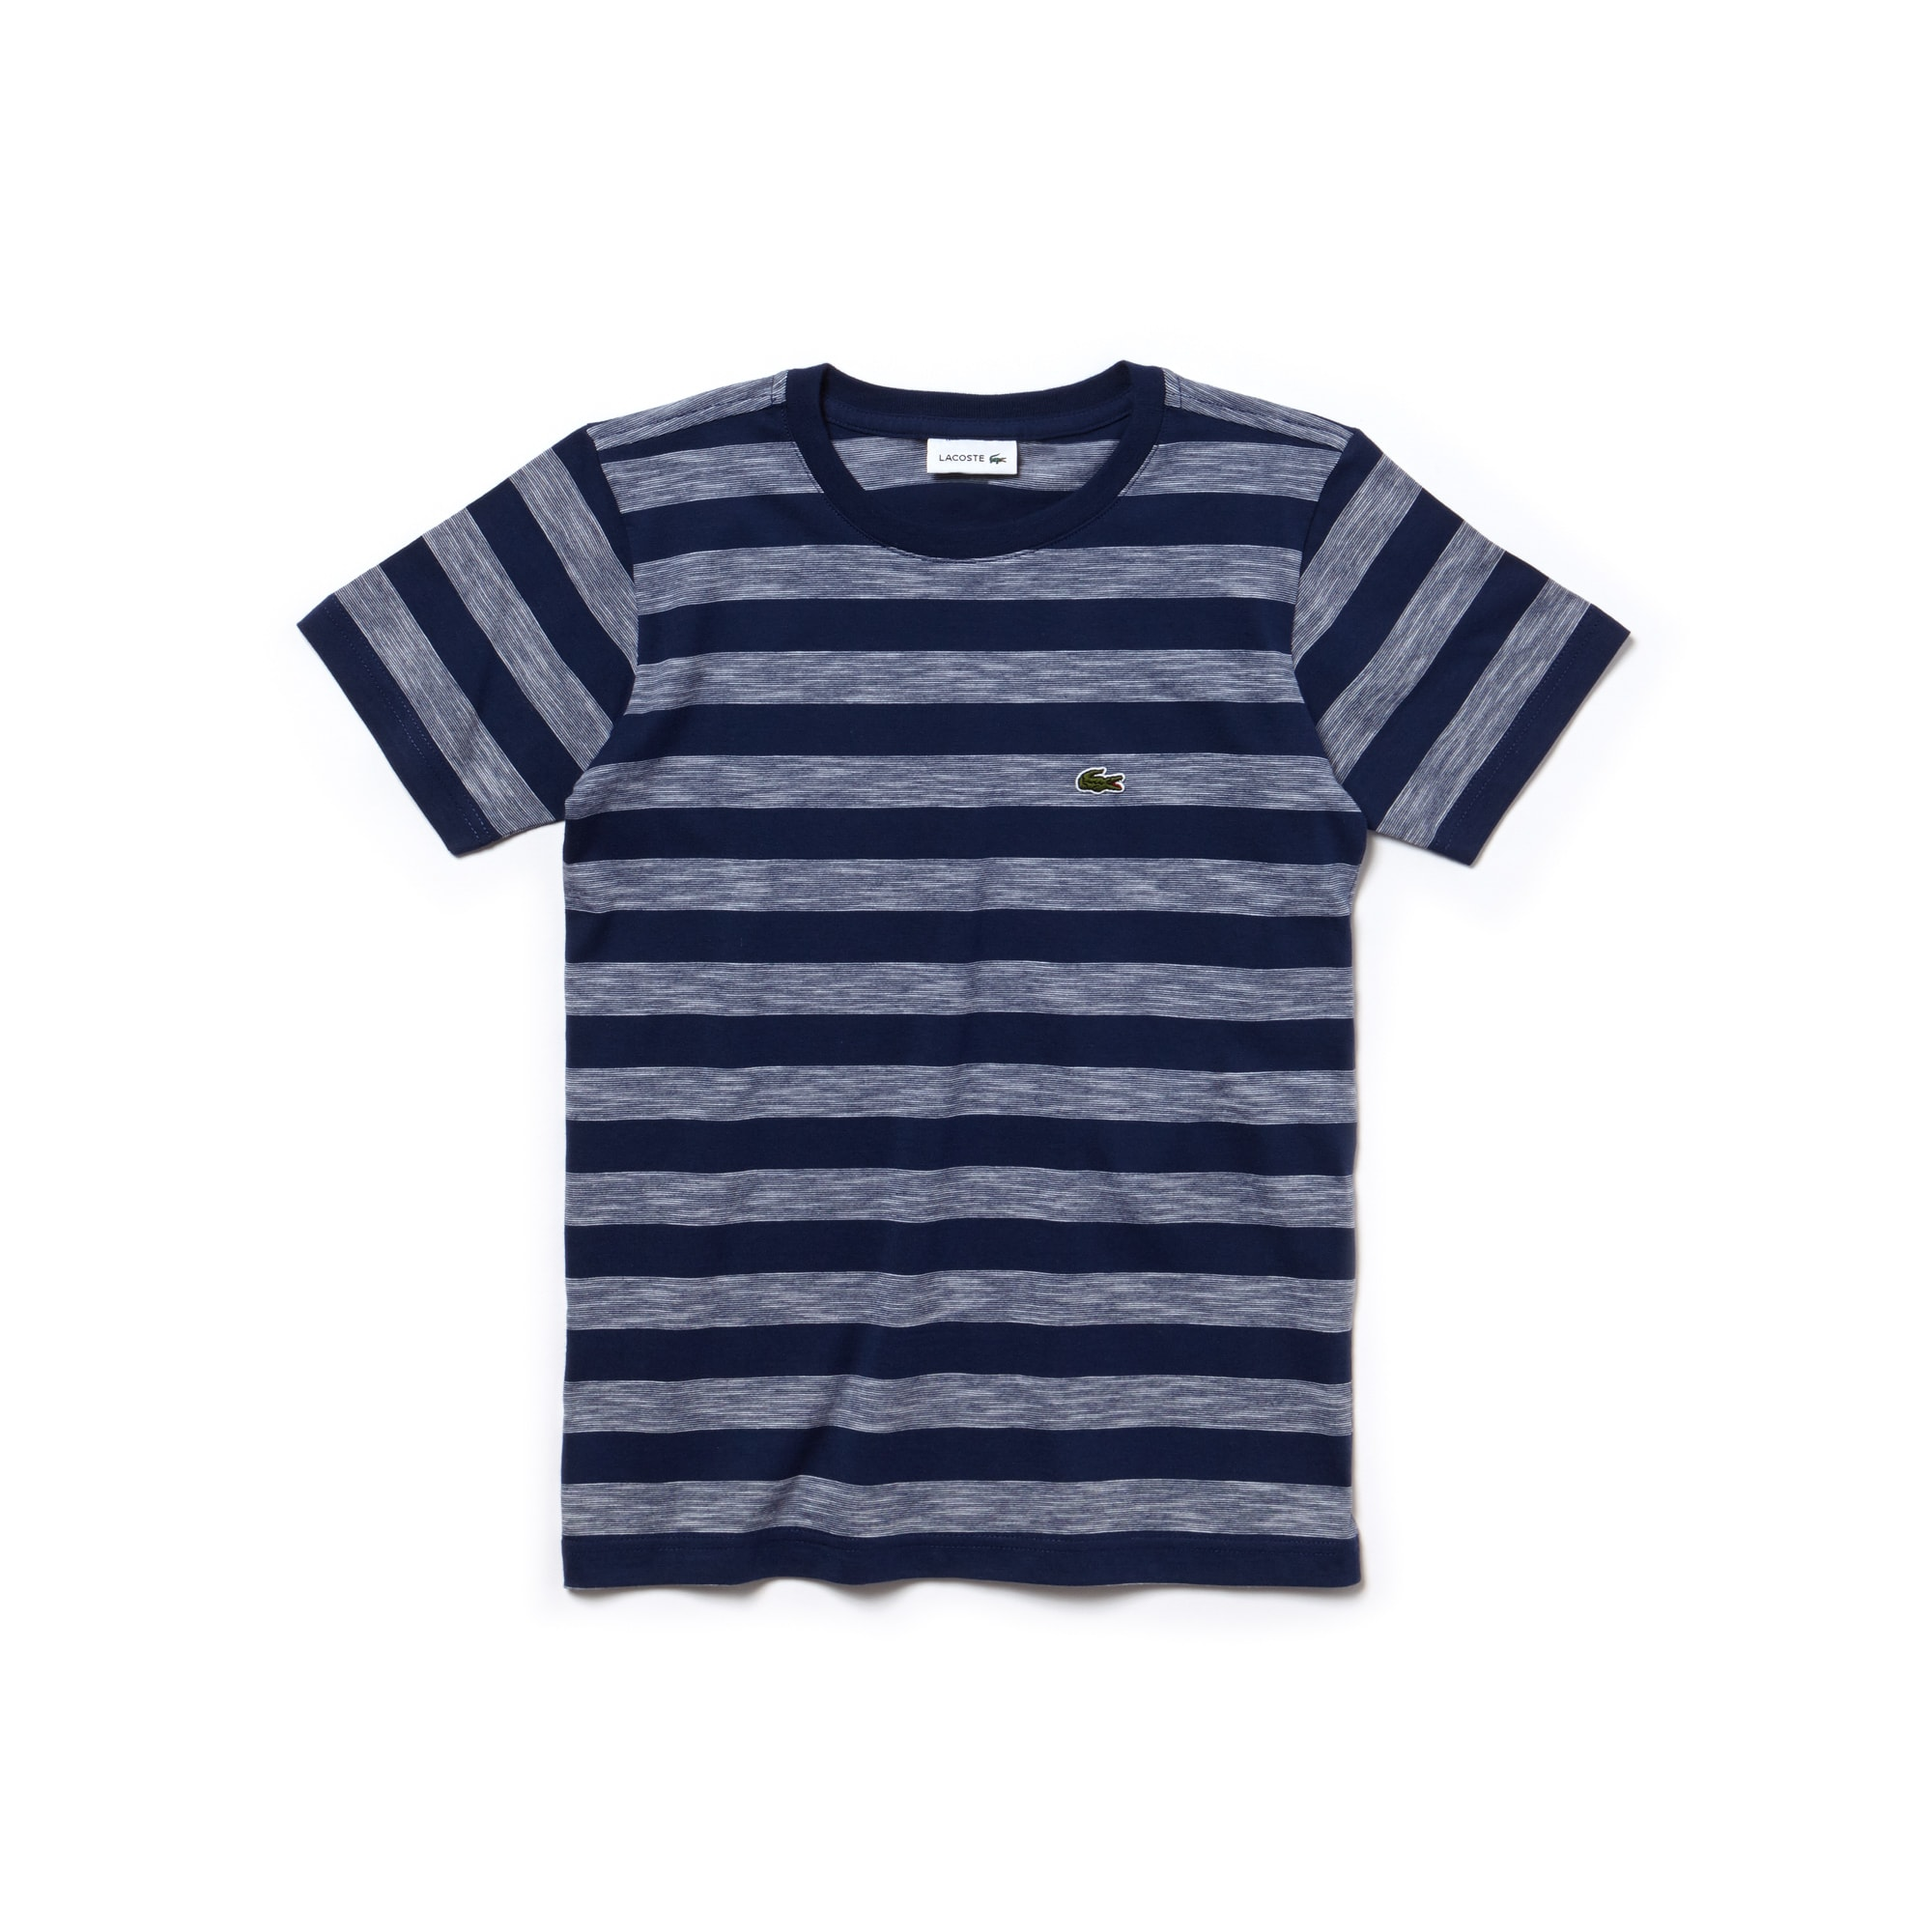 Boys' Crew Neck Striped Cotton T-Shirt